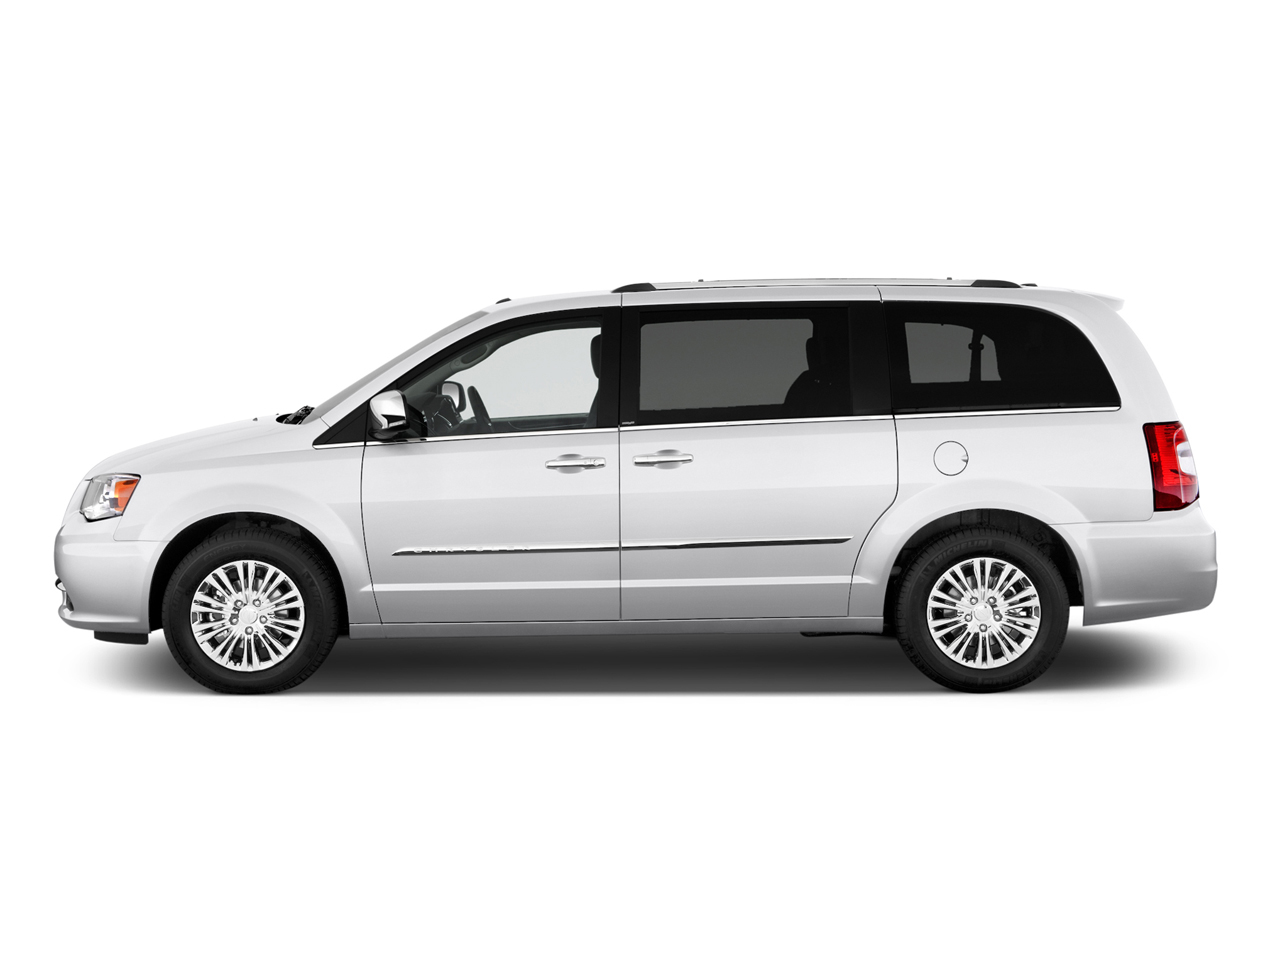 2011 chrysler town country review ratings specs prices and photos the car connection. Black Bedroom Furniture Sets. Home Design Ideas